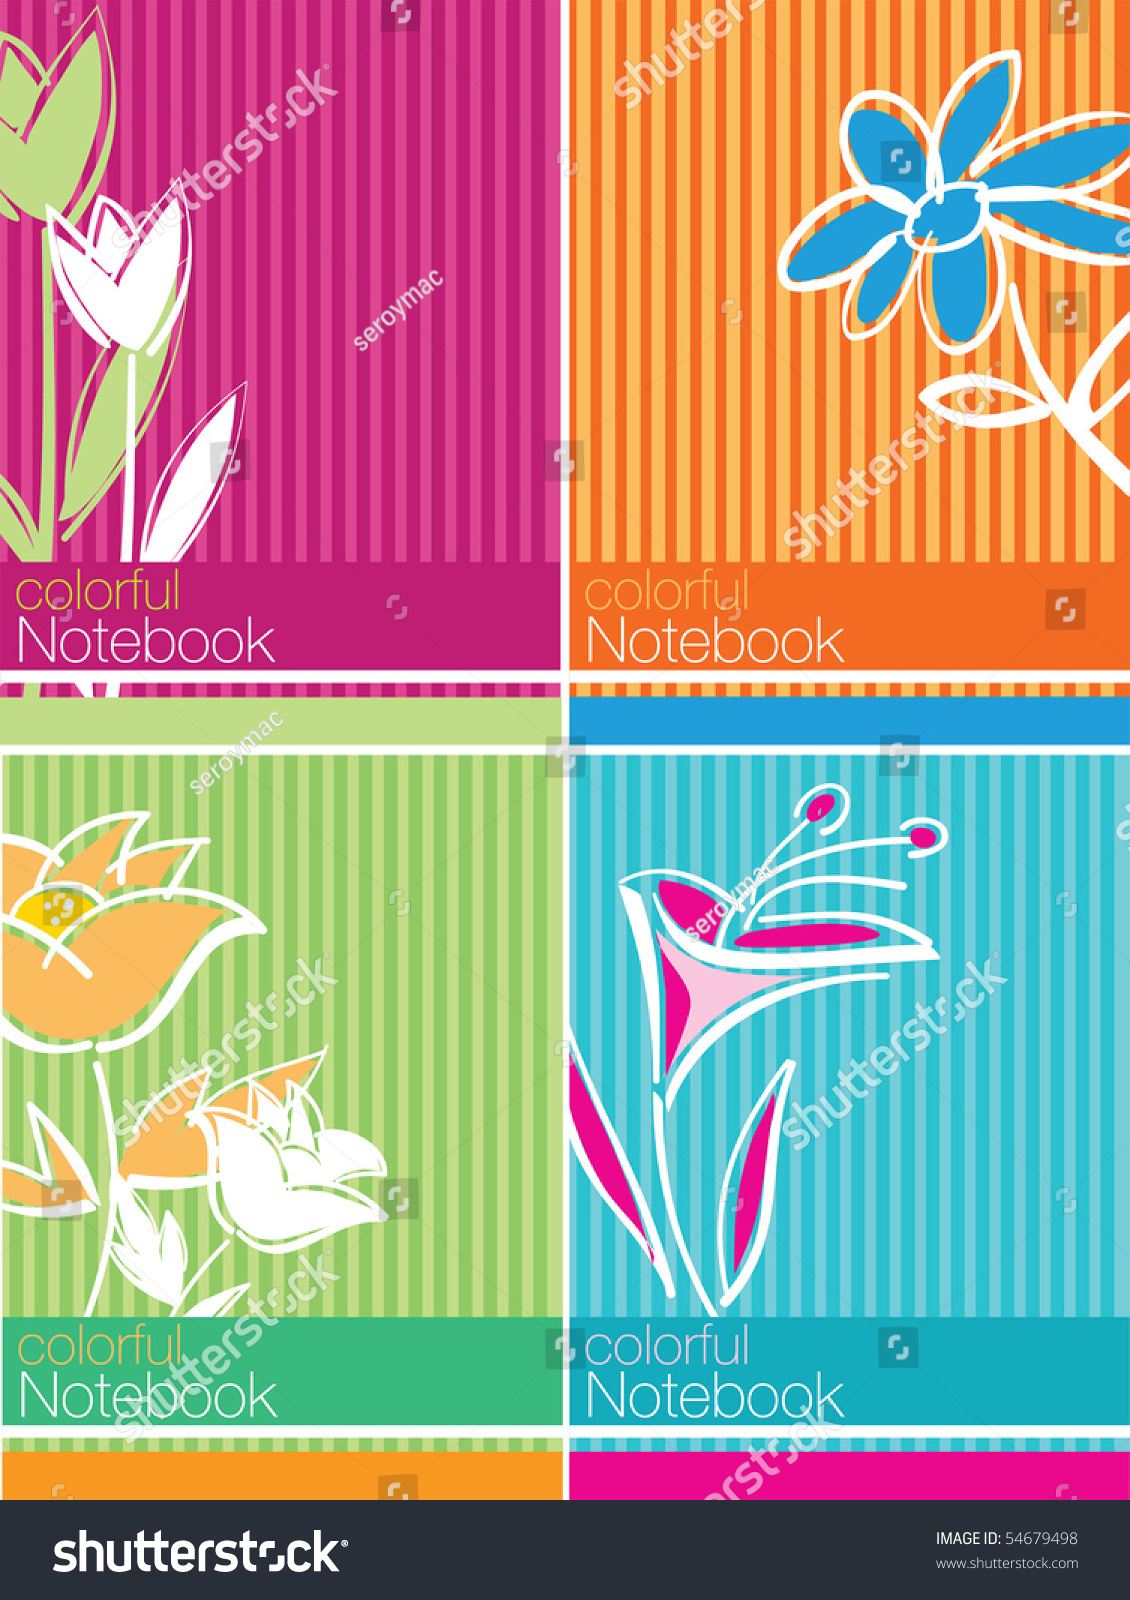 School Notebook Cover Design : Colorful notebook cover design stock vector